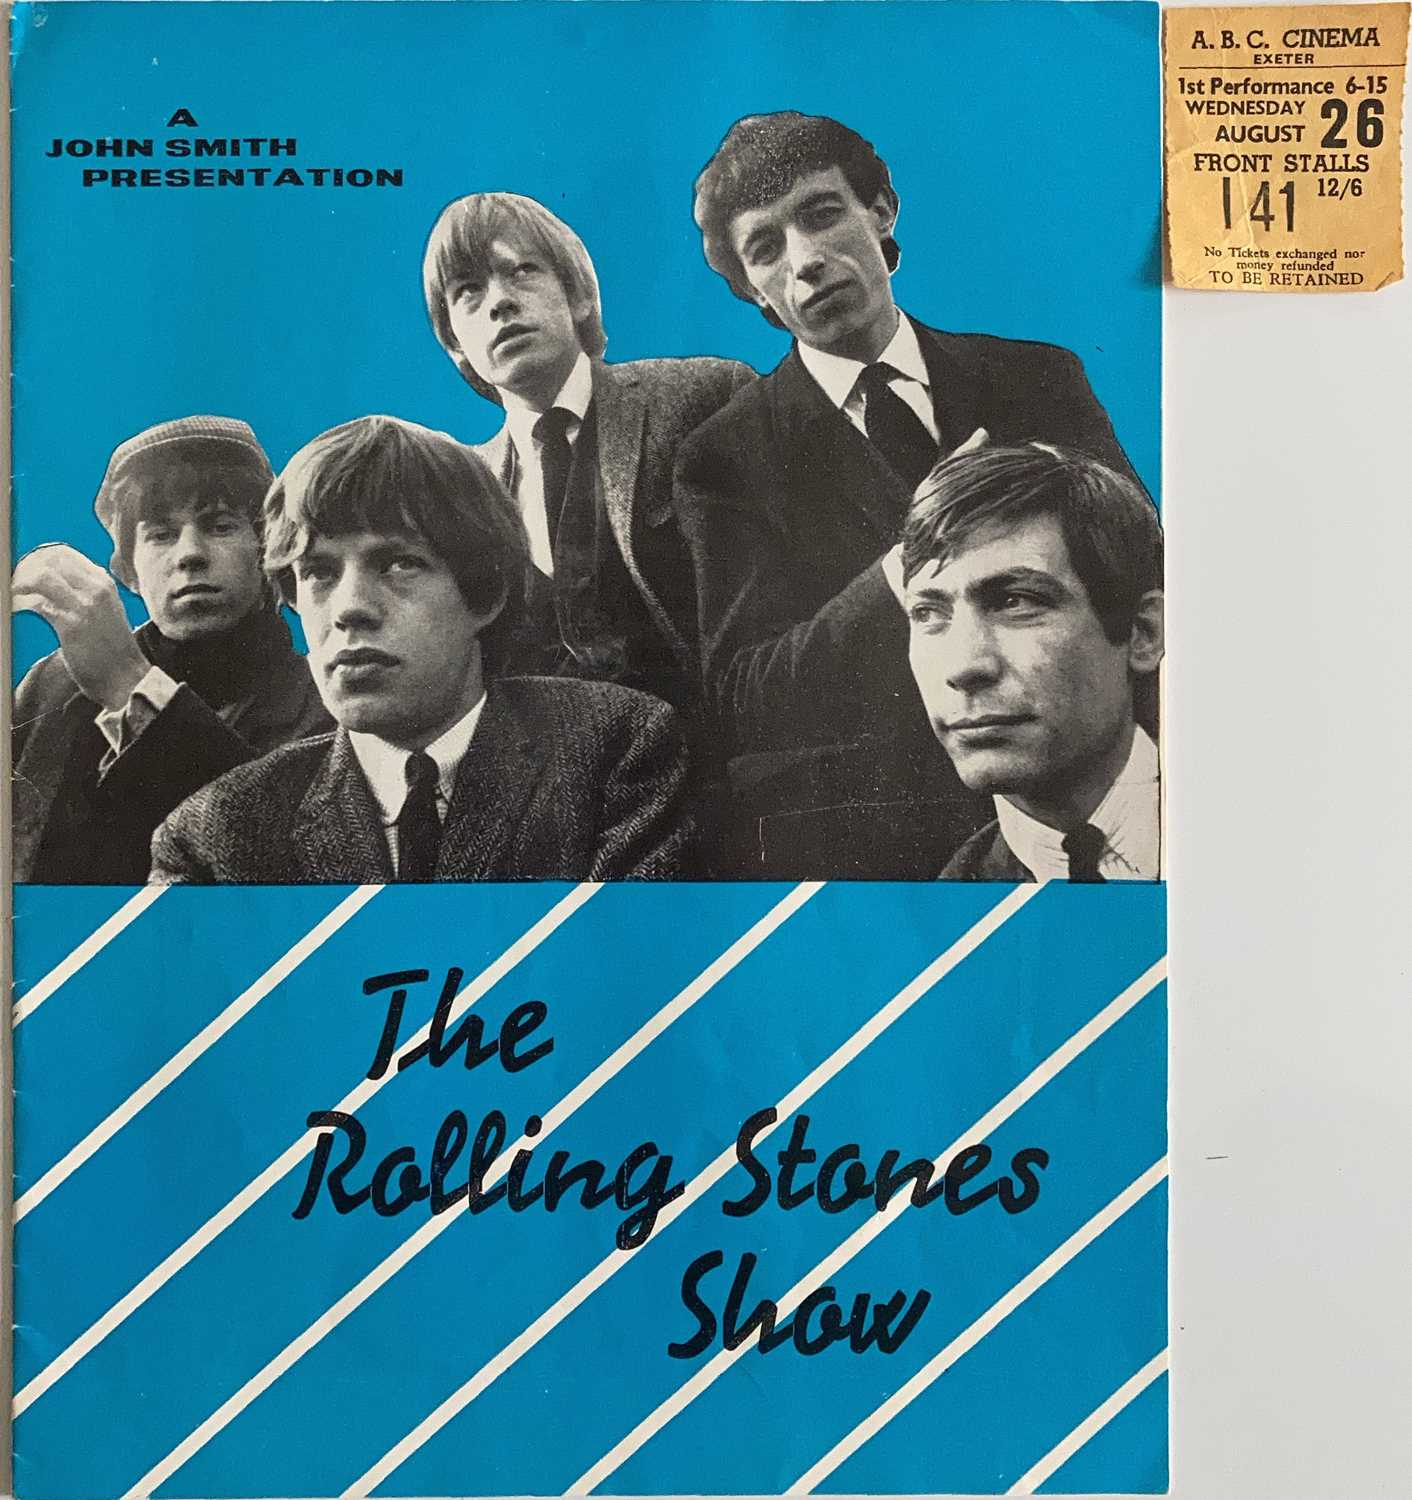 ROLLING STONES CONCERT PROGRAMME AND TICKET - 1964.